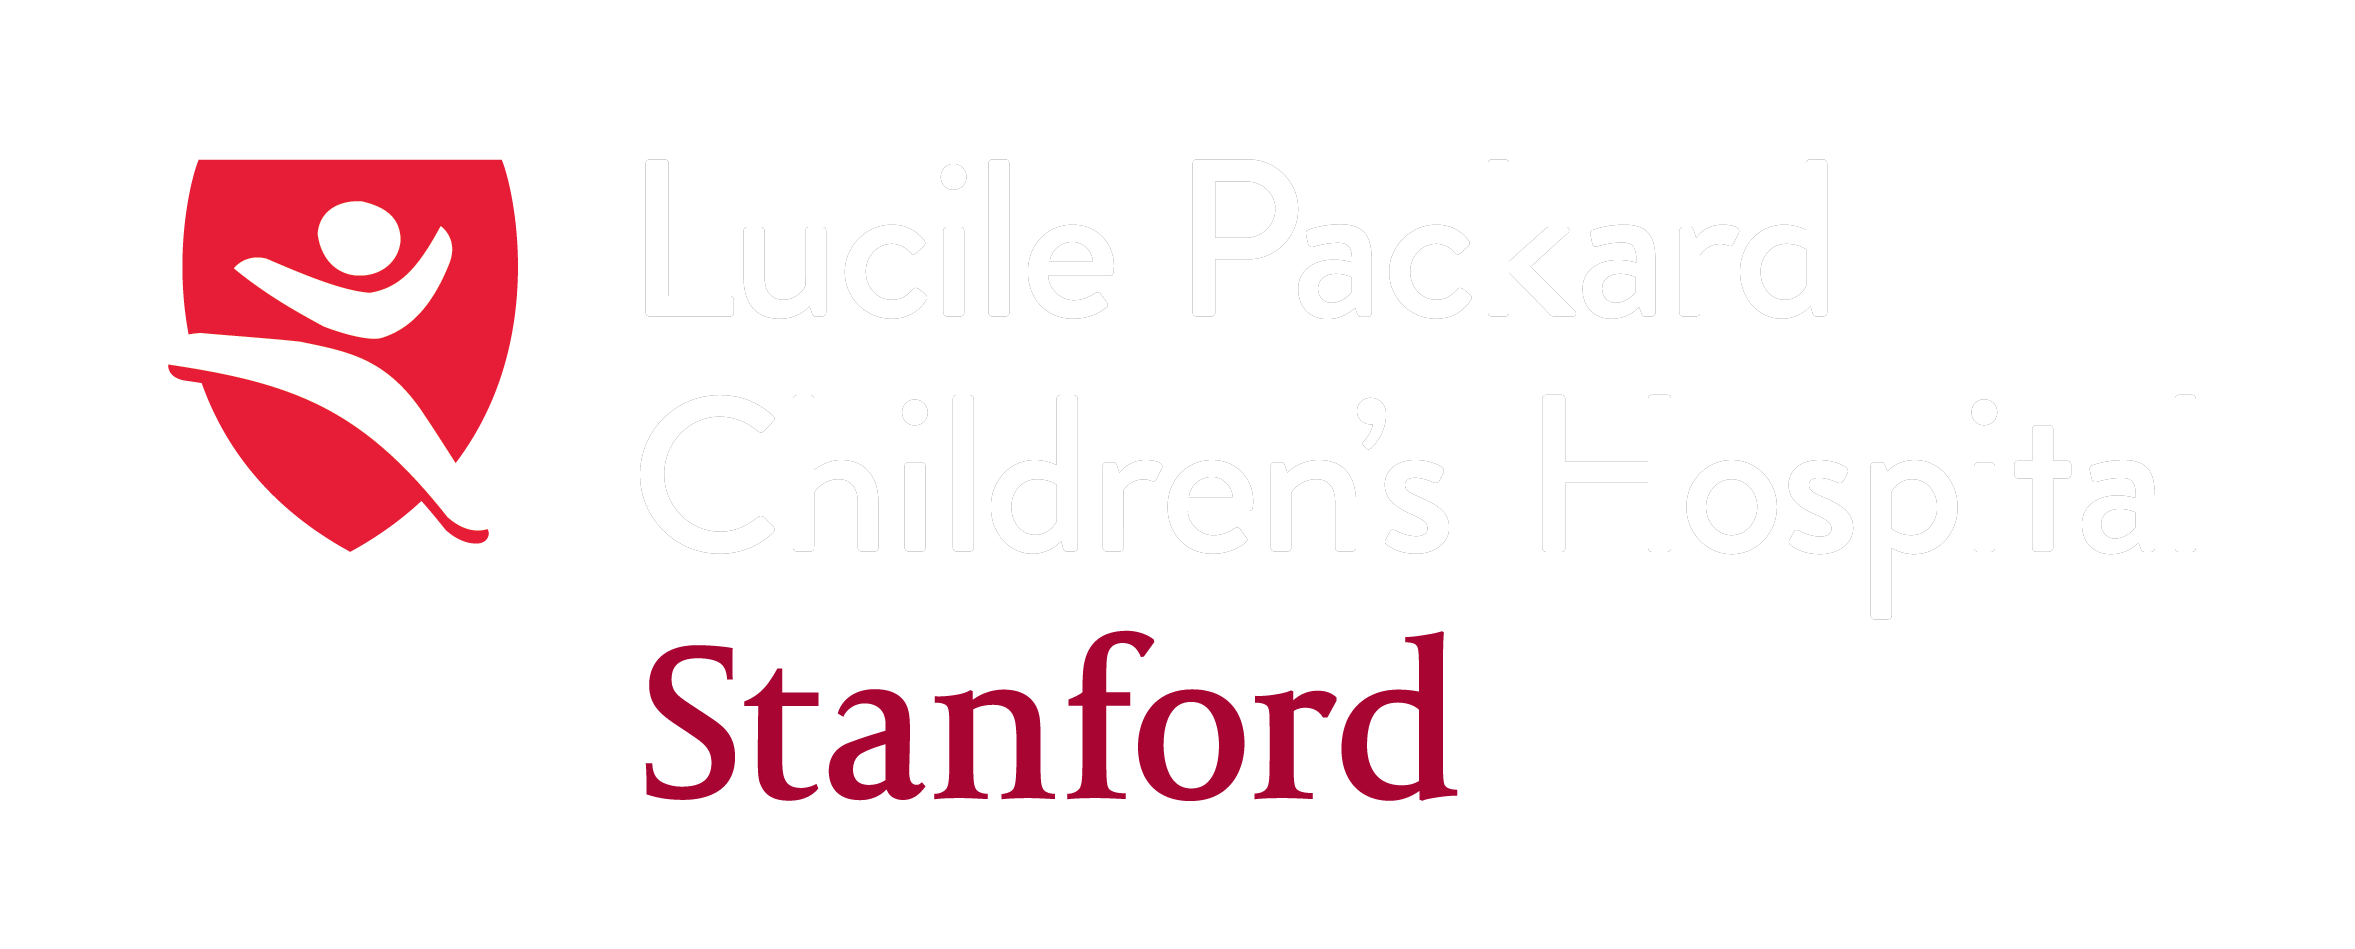 Stanford Lucile Packard Children's Hospital logo